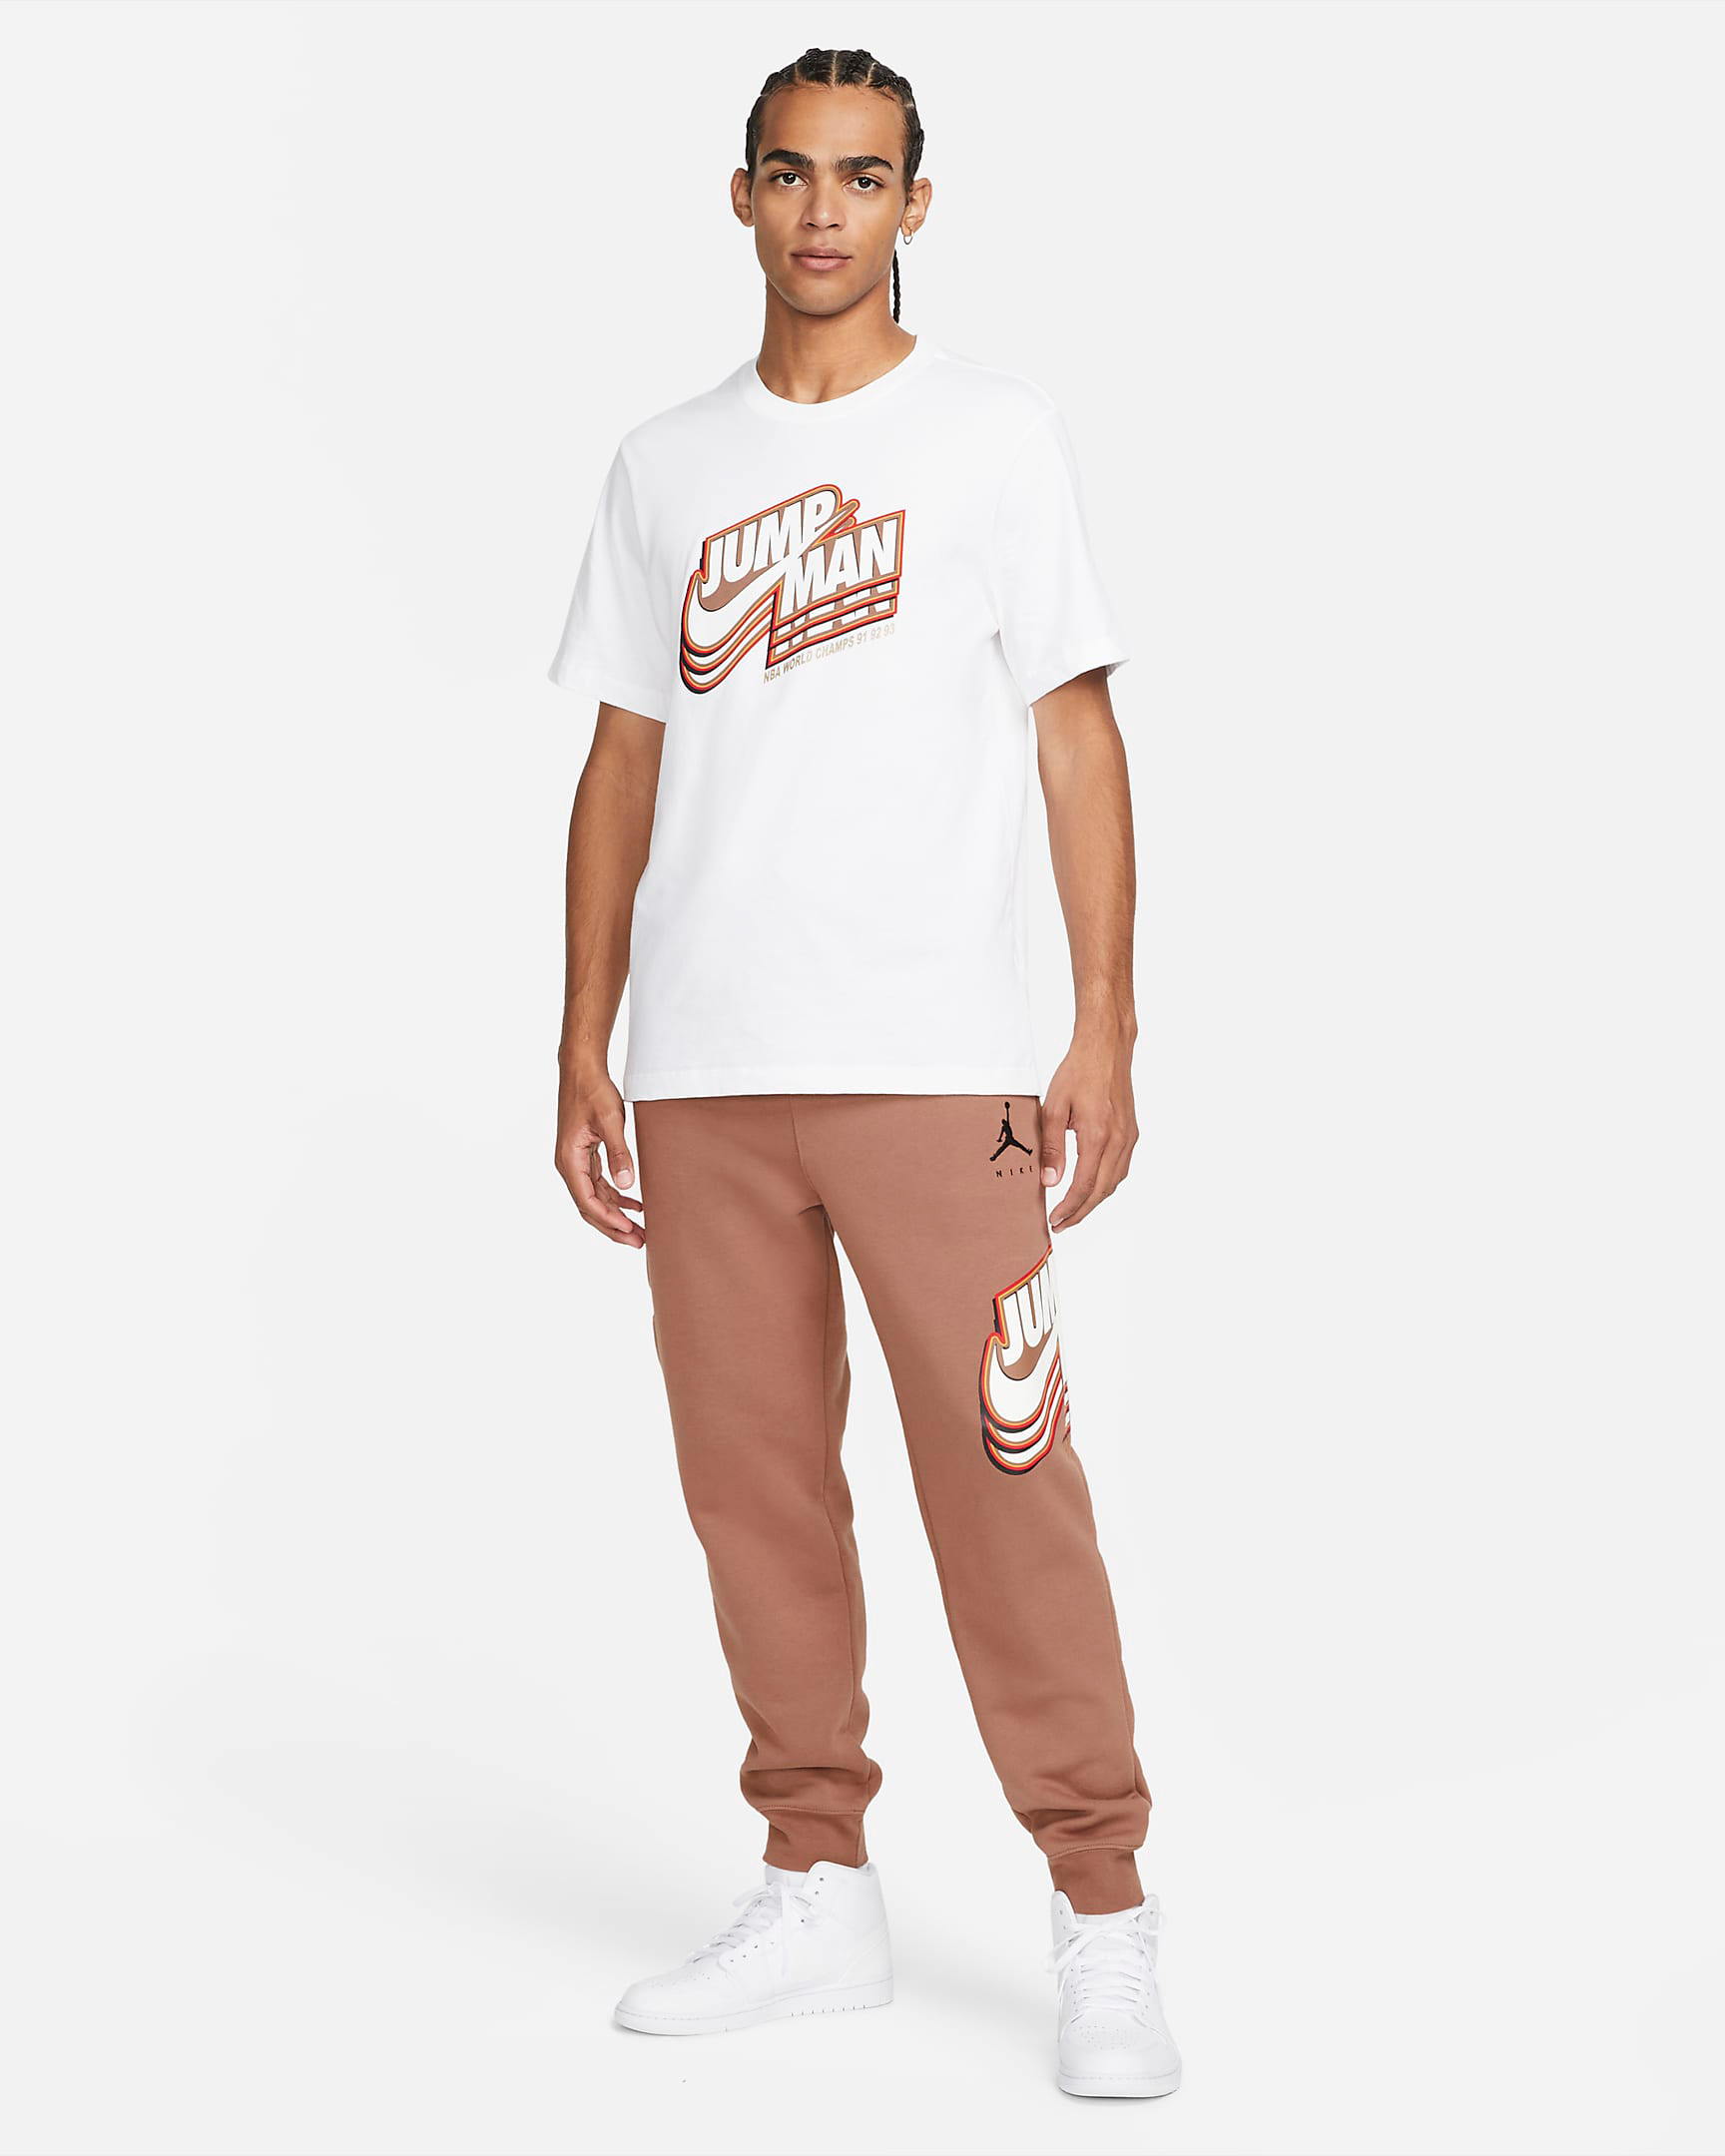 air-jordan-14-winterized-shirt-white-archaeo-brown-pants-outfit